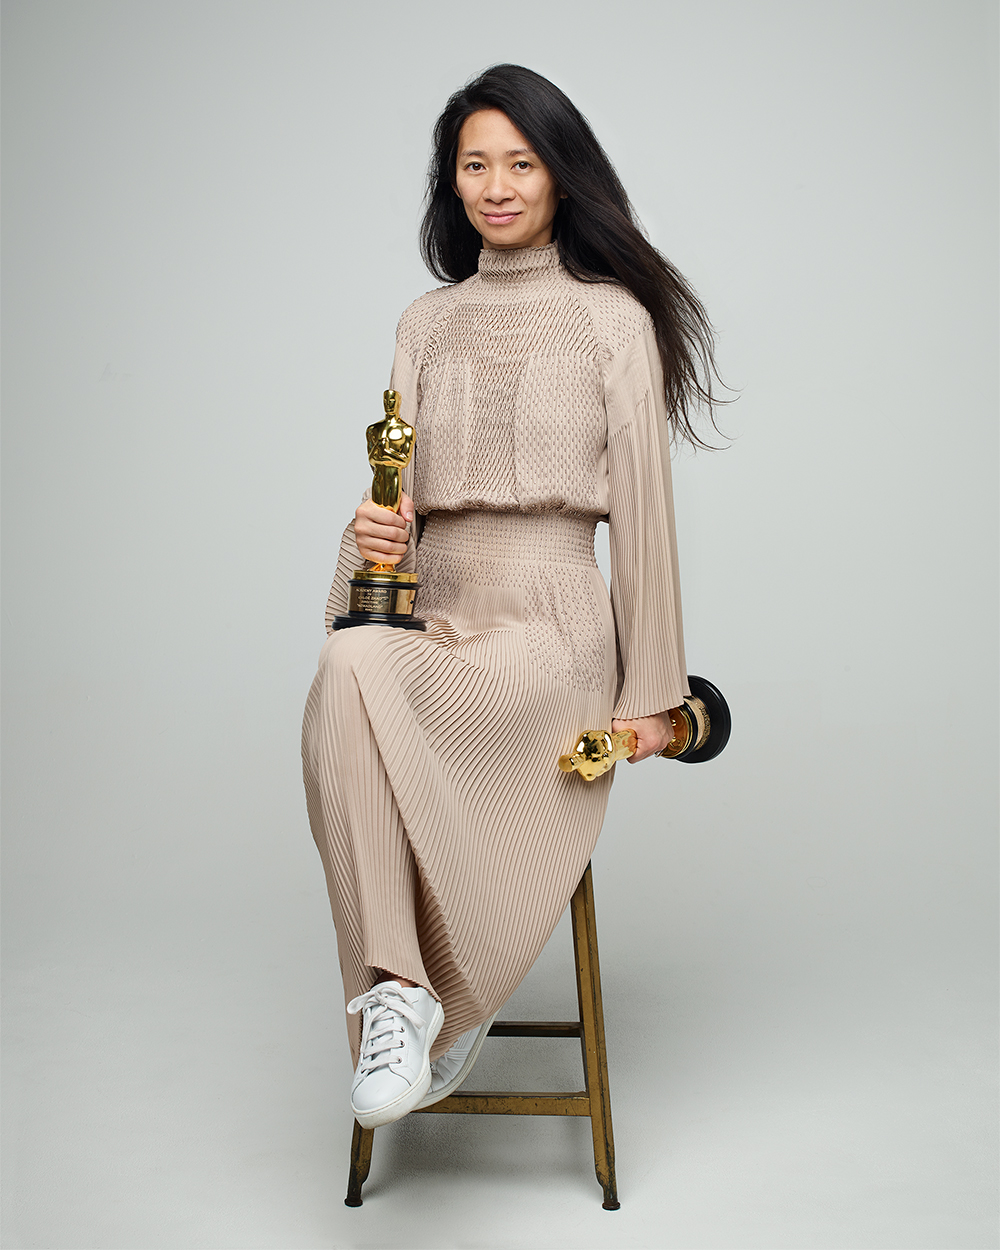 Chloe-Zhao-Variety-Day-After-The-Oscars-Cover-Story-2.jpg